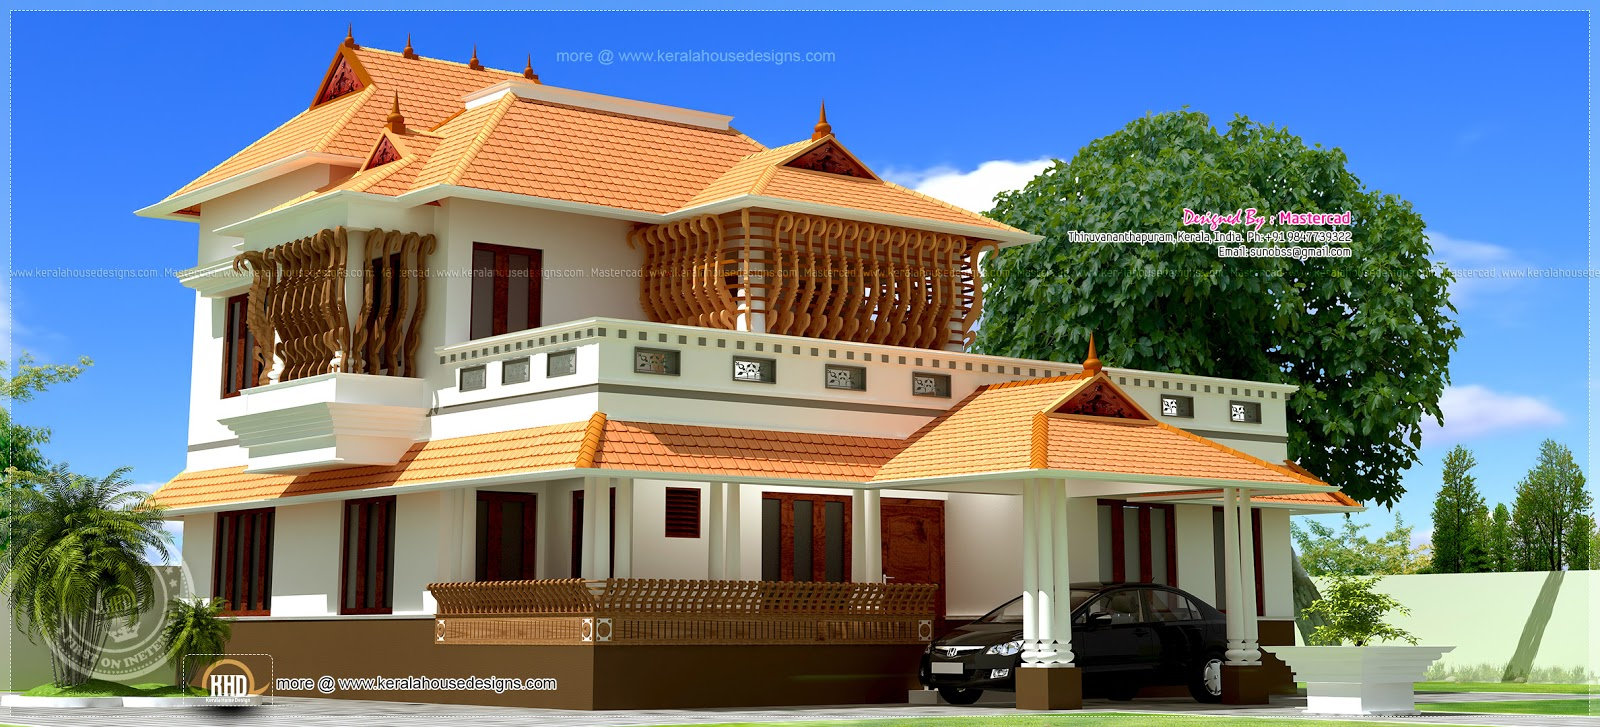 Kerala house design photo gallery joy studio design for Blueprint photo gallery